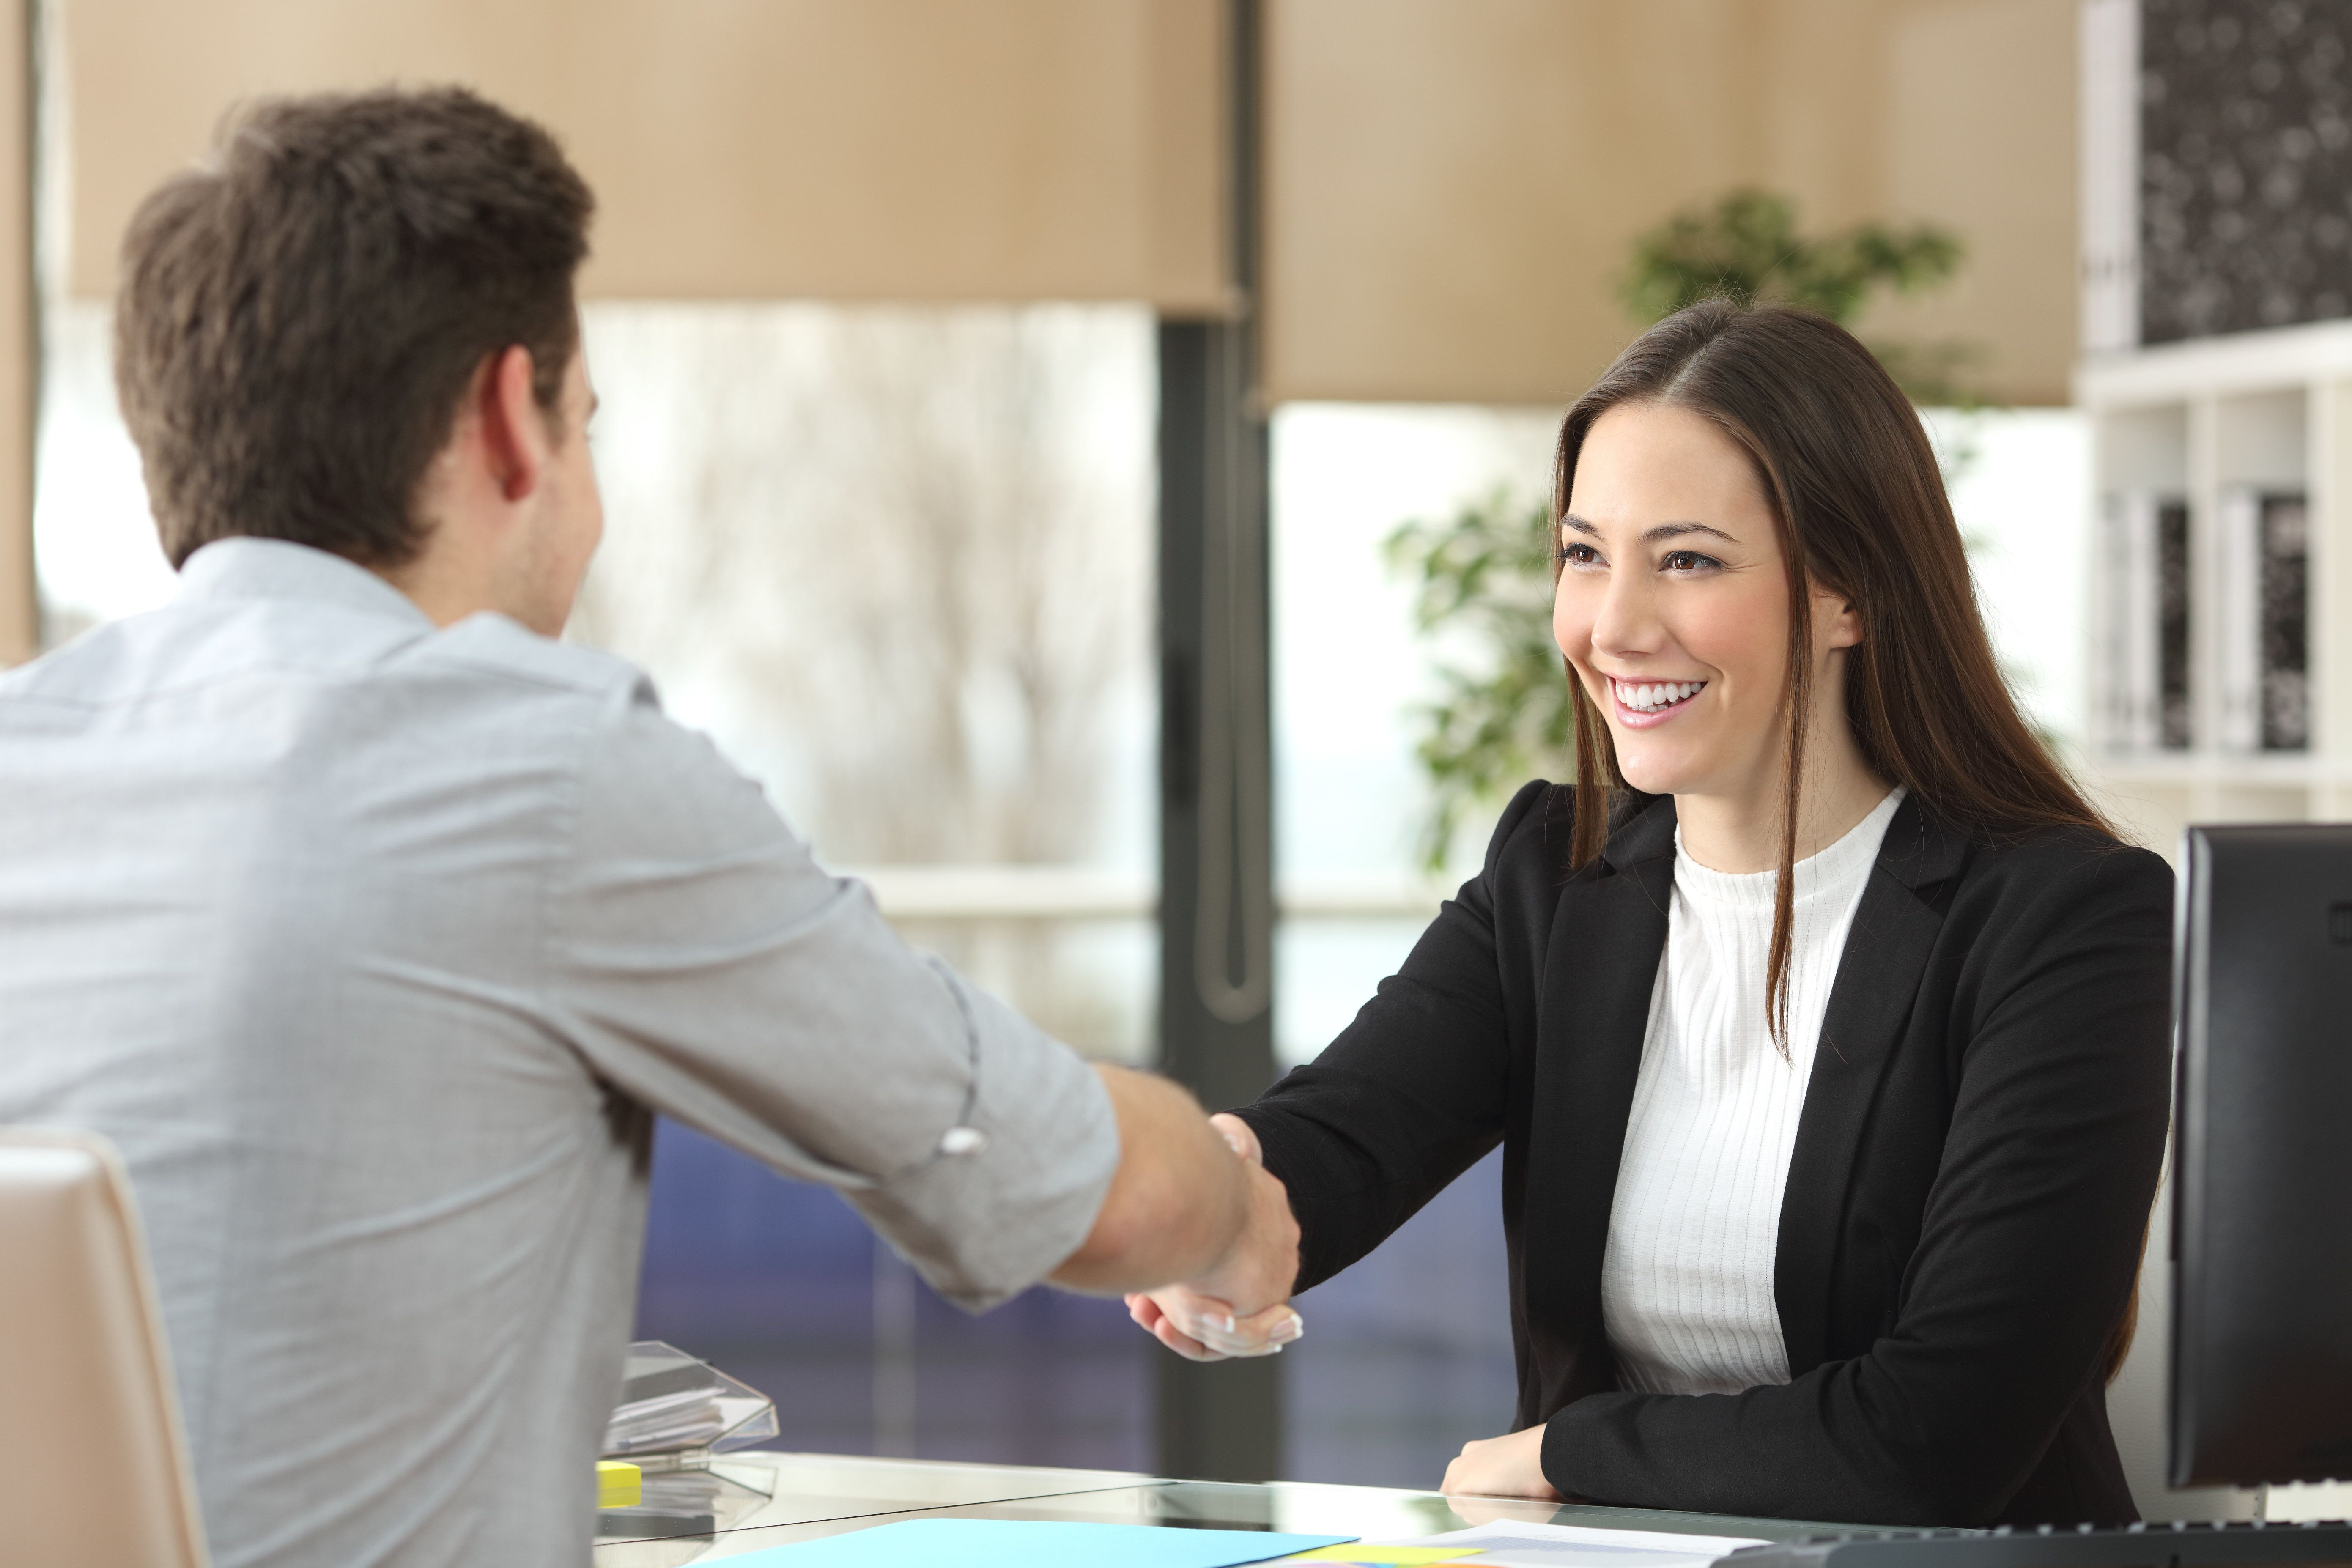 These negotiation tactics will help you get the salary you want.